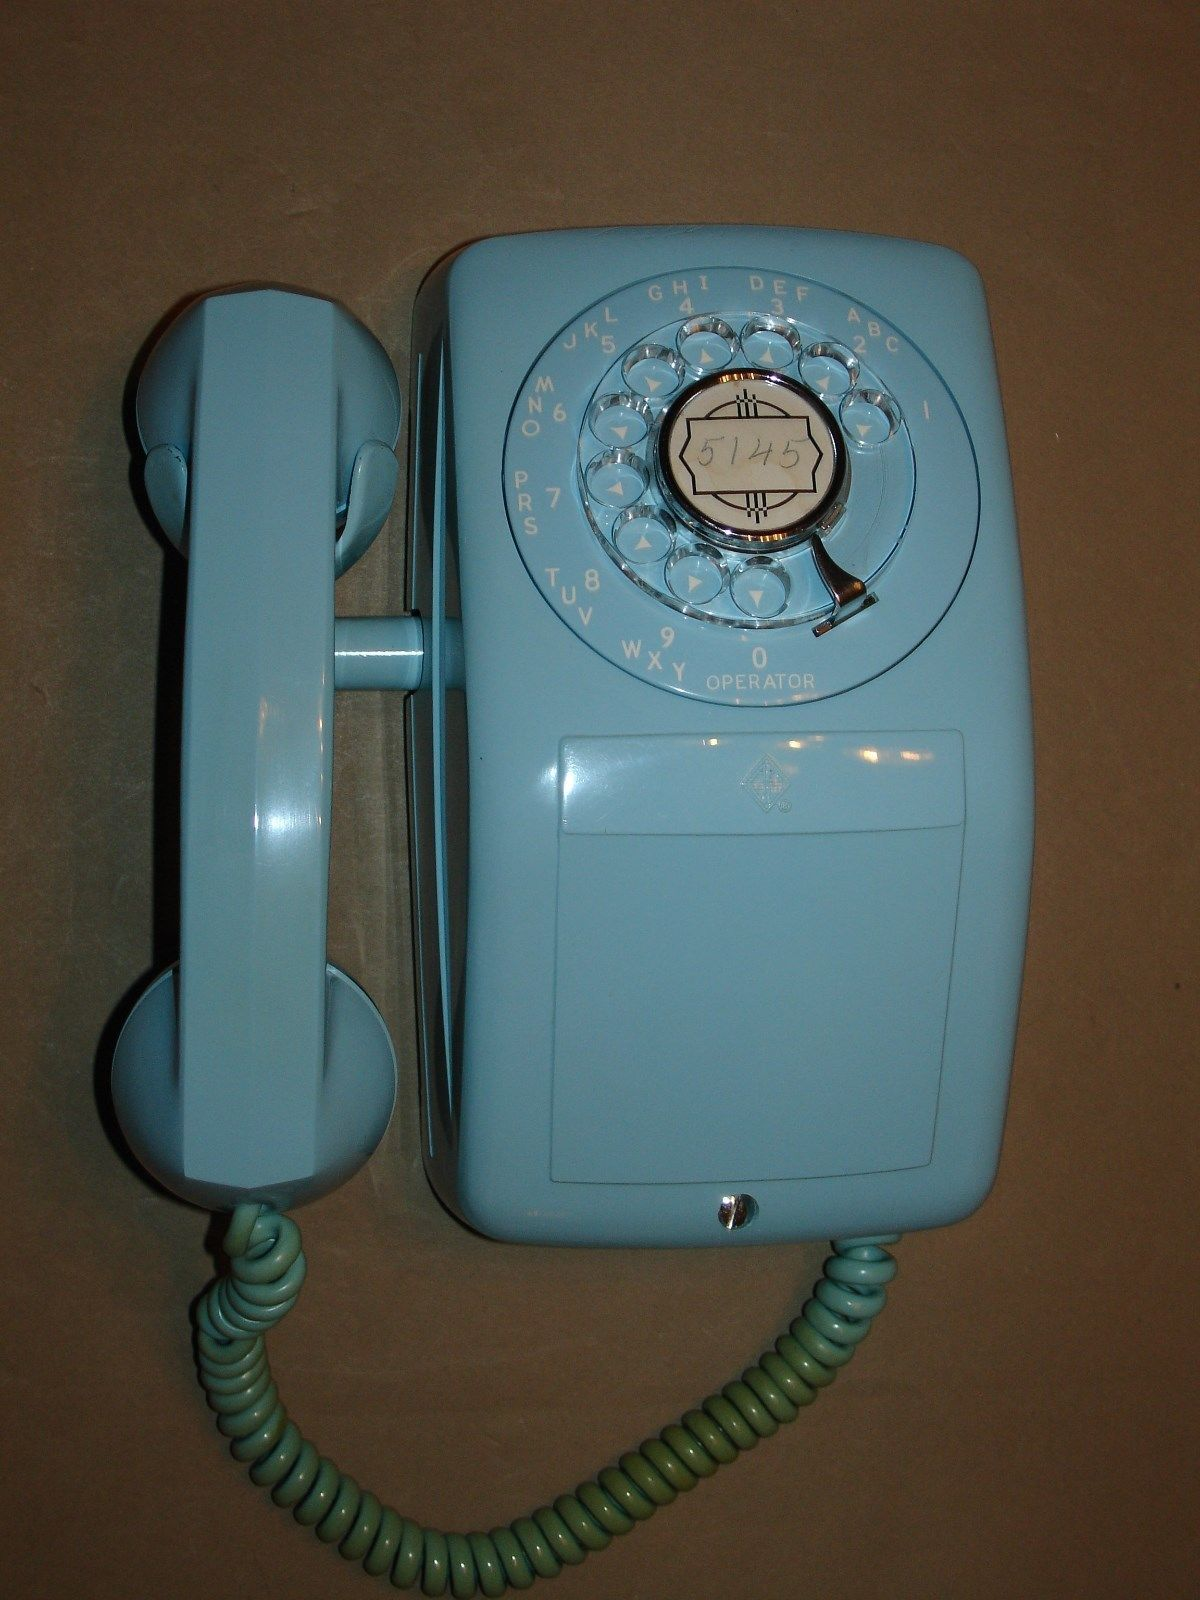 EARLY AUTOMATIC ELECTRIC TYPE 90 MONOPHONE TELEPHONE